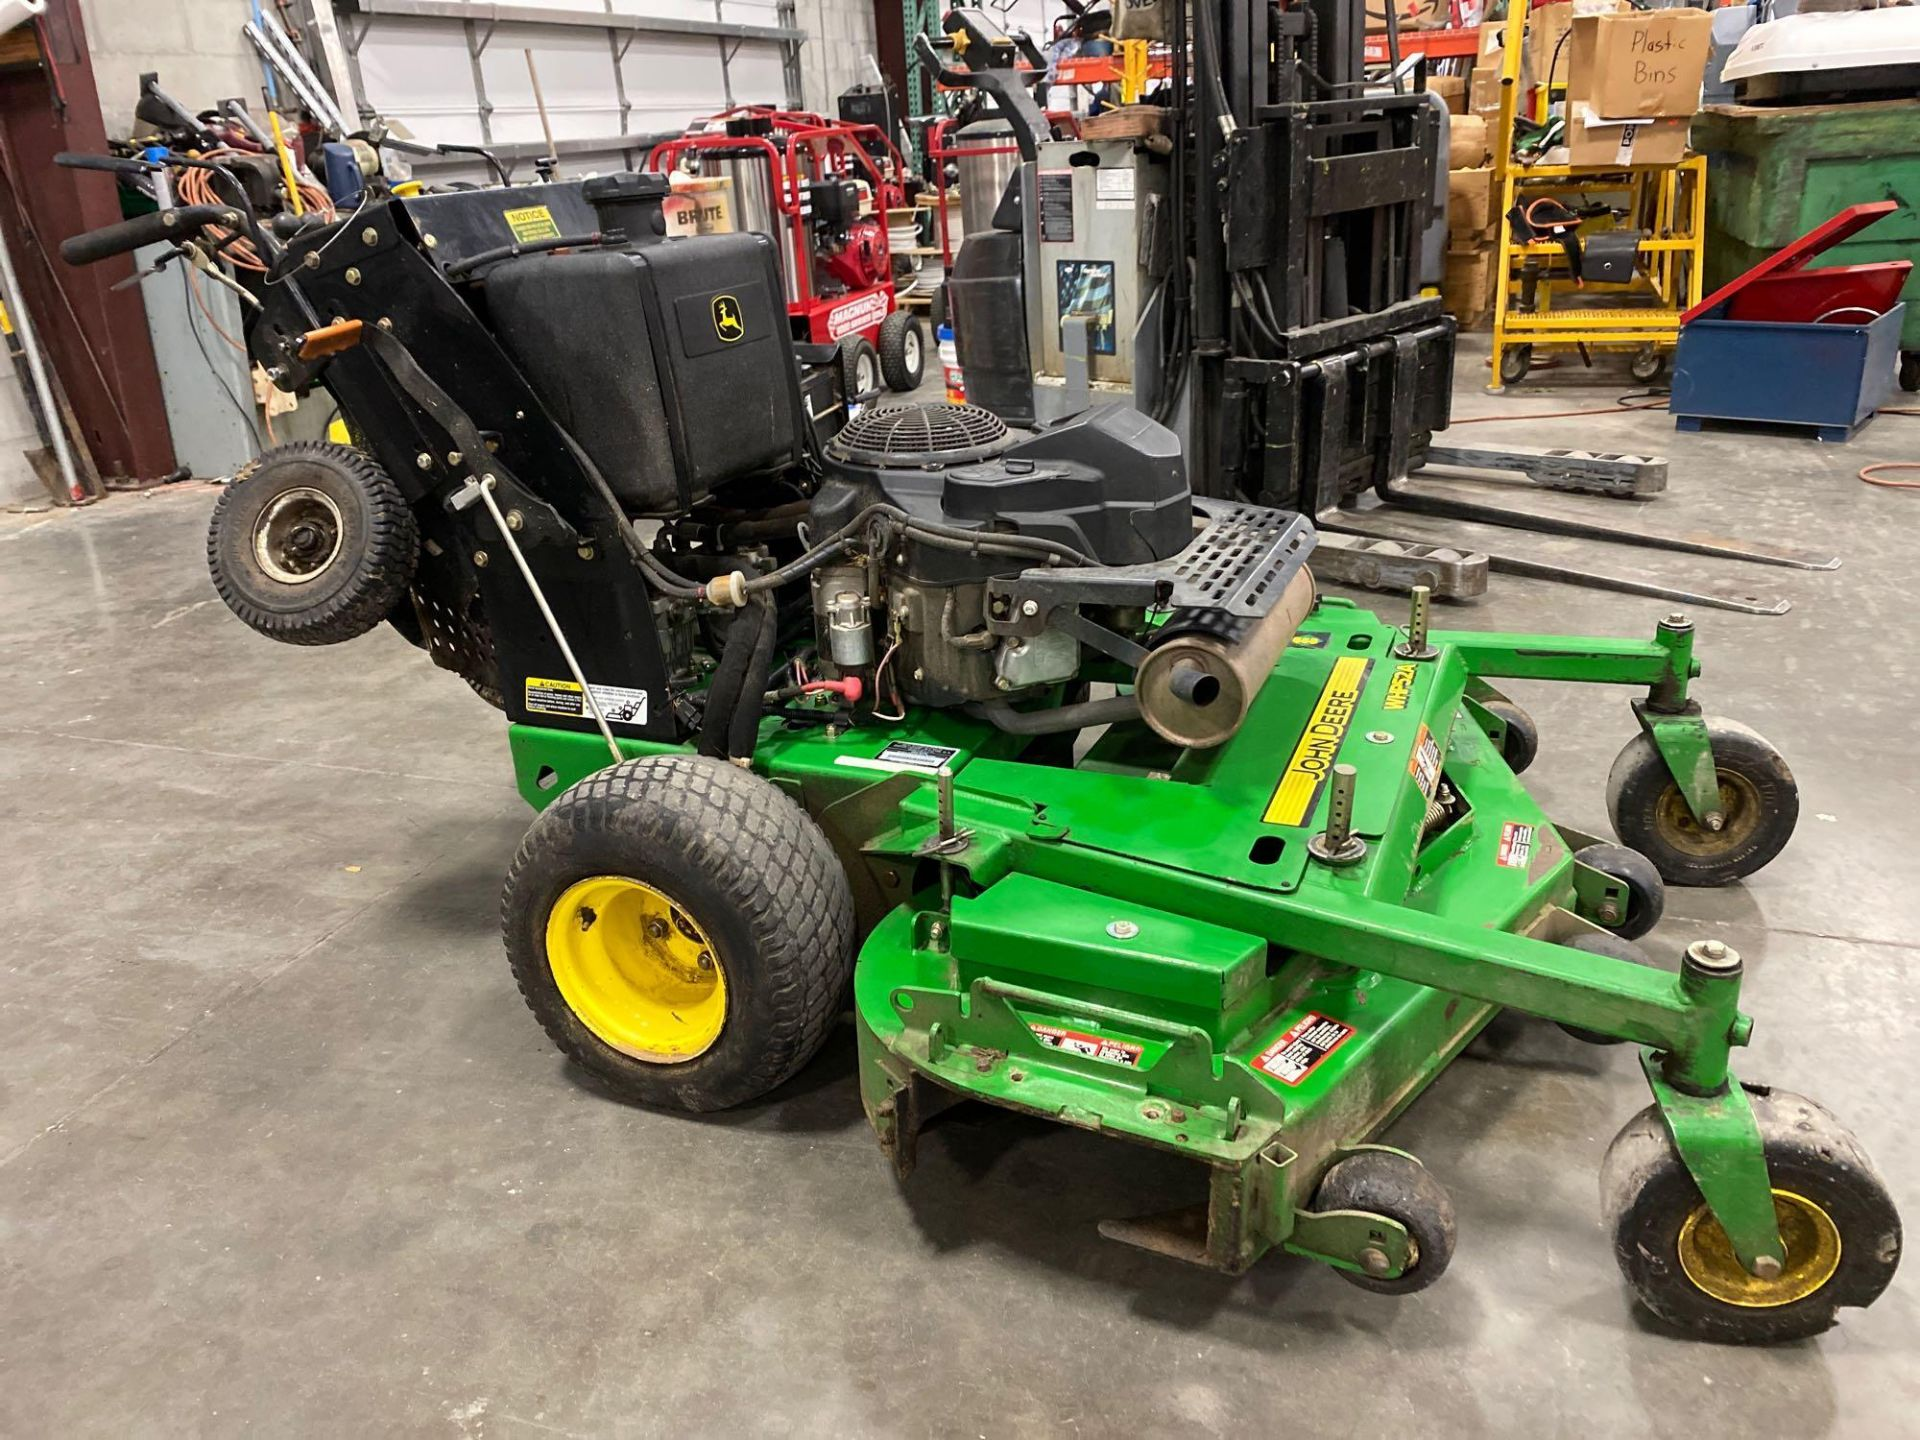 """Lot 31B - 2016 JOHN DEERE WHP52A STAND ON MOWER, 1,362 HOURS SHOWING, 52"""" DECK, GAS POWERED, RUNS AND OPERATES"""